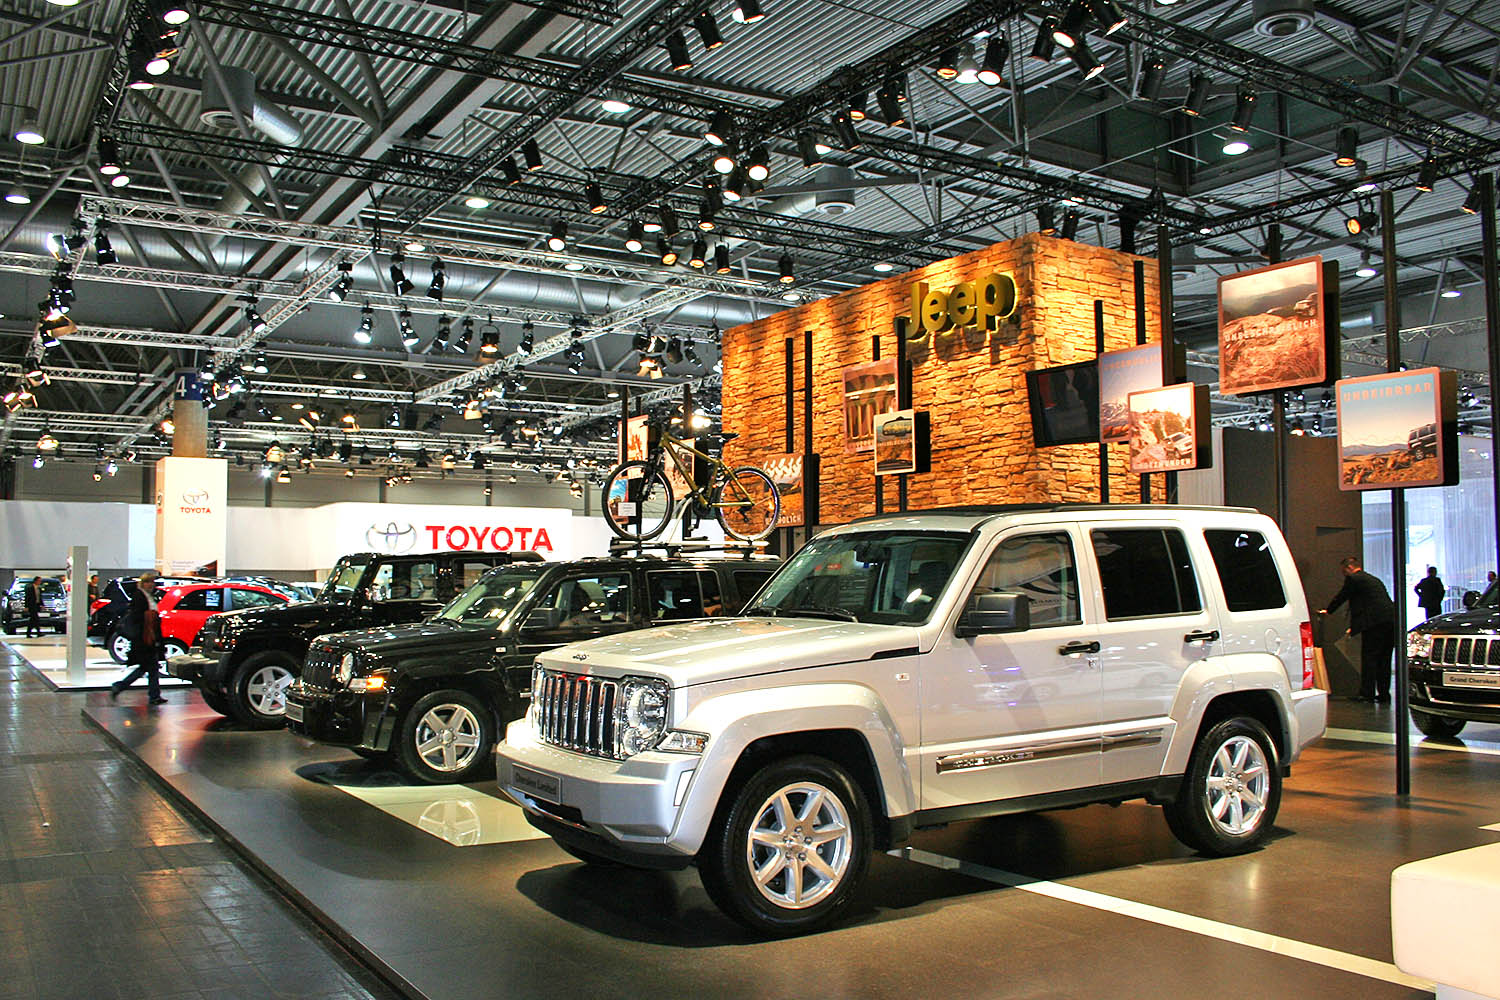 schareinprojekt-messe-event-iaa-frankfurt-jeep-promotion-automotive-auto-fahrzeug